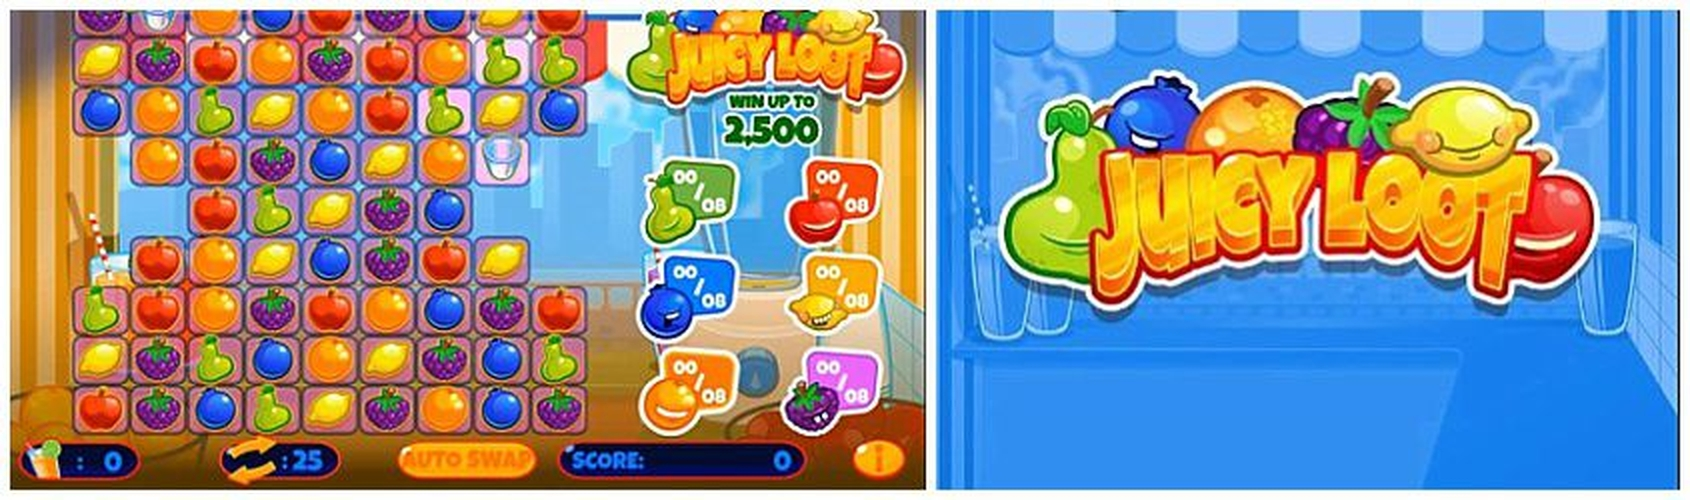 The Juicy Loot Online Slot Demo Game by IGT